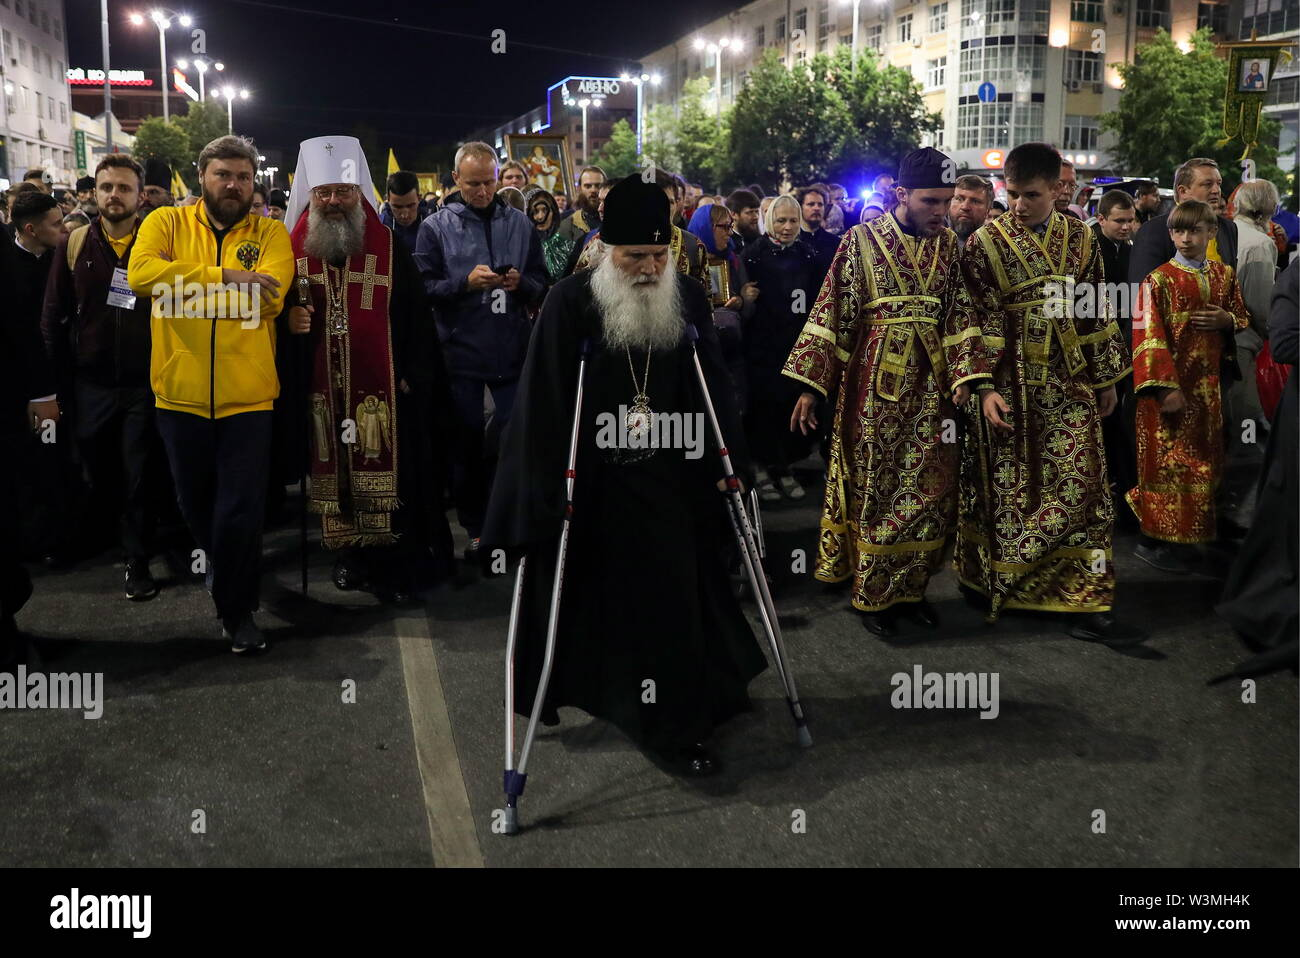 Yekaterinburg, Russia. 17th July, 2019. YEKATERINBURG, RUSSIA - JULY 17, 2019: Believers and members of the clergy take part in a religious procession in memory of the Russian royal family from the Church of All Saints in Yekaterinburg to the Ganina Yama Monastery in the Sverdlovsk Region. Emperor Nicholas II of Russia and his family were executed on July 17, 1918. The procession is held as part of the Tsar Days Orthodox Culture Festival. Donat Sorokin/TASS Credit: ITAR-TASS News Agency/Alamy Live News - Stock Image